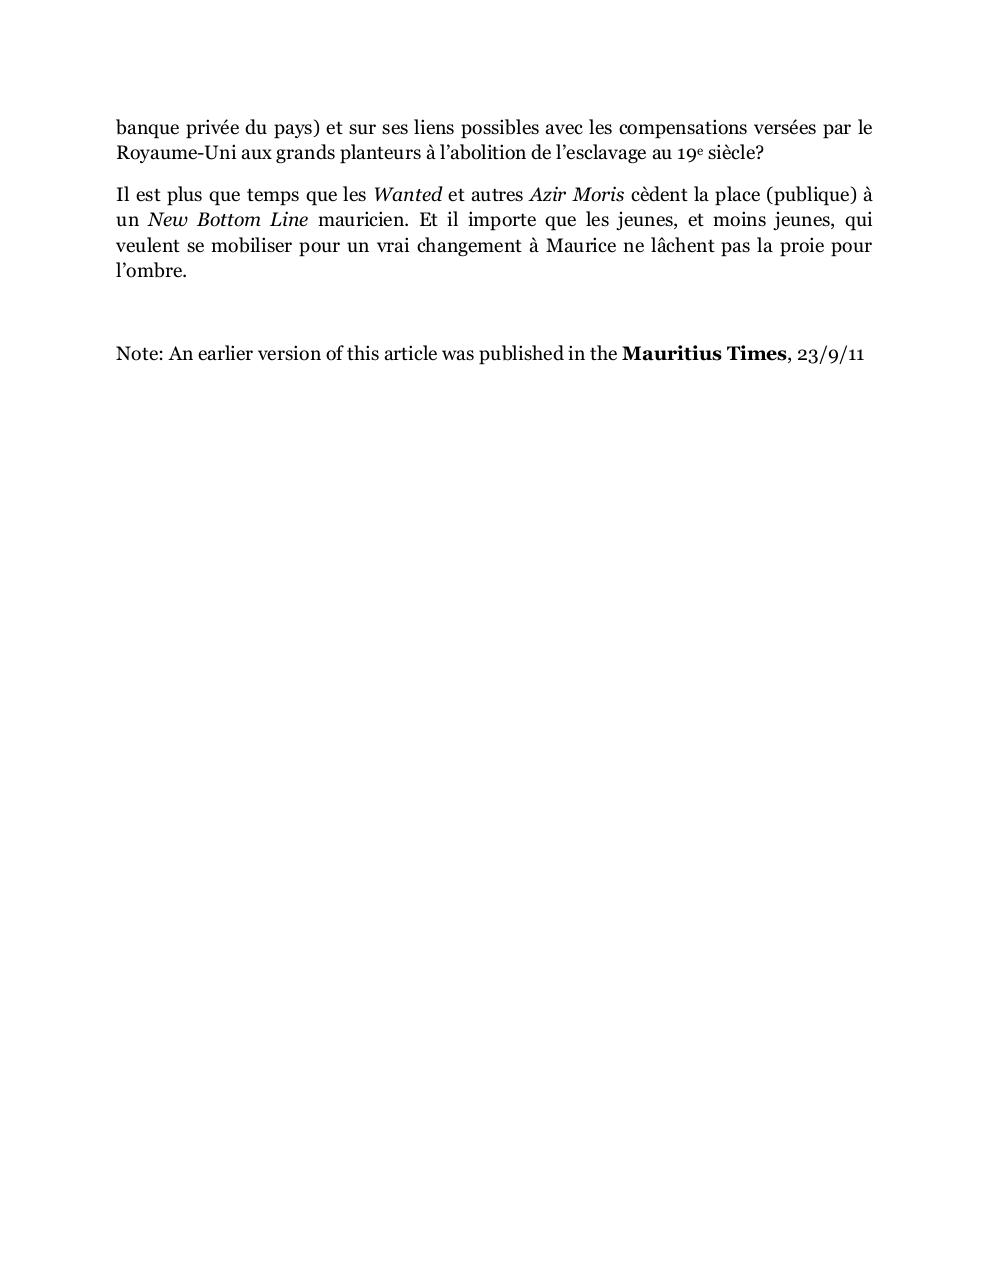 Des Wanted mauriciens au New Bottom Line etatsunien, amended MTimes-art-23092011.pdf - page 4/4